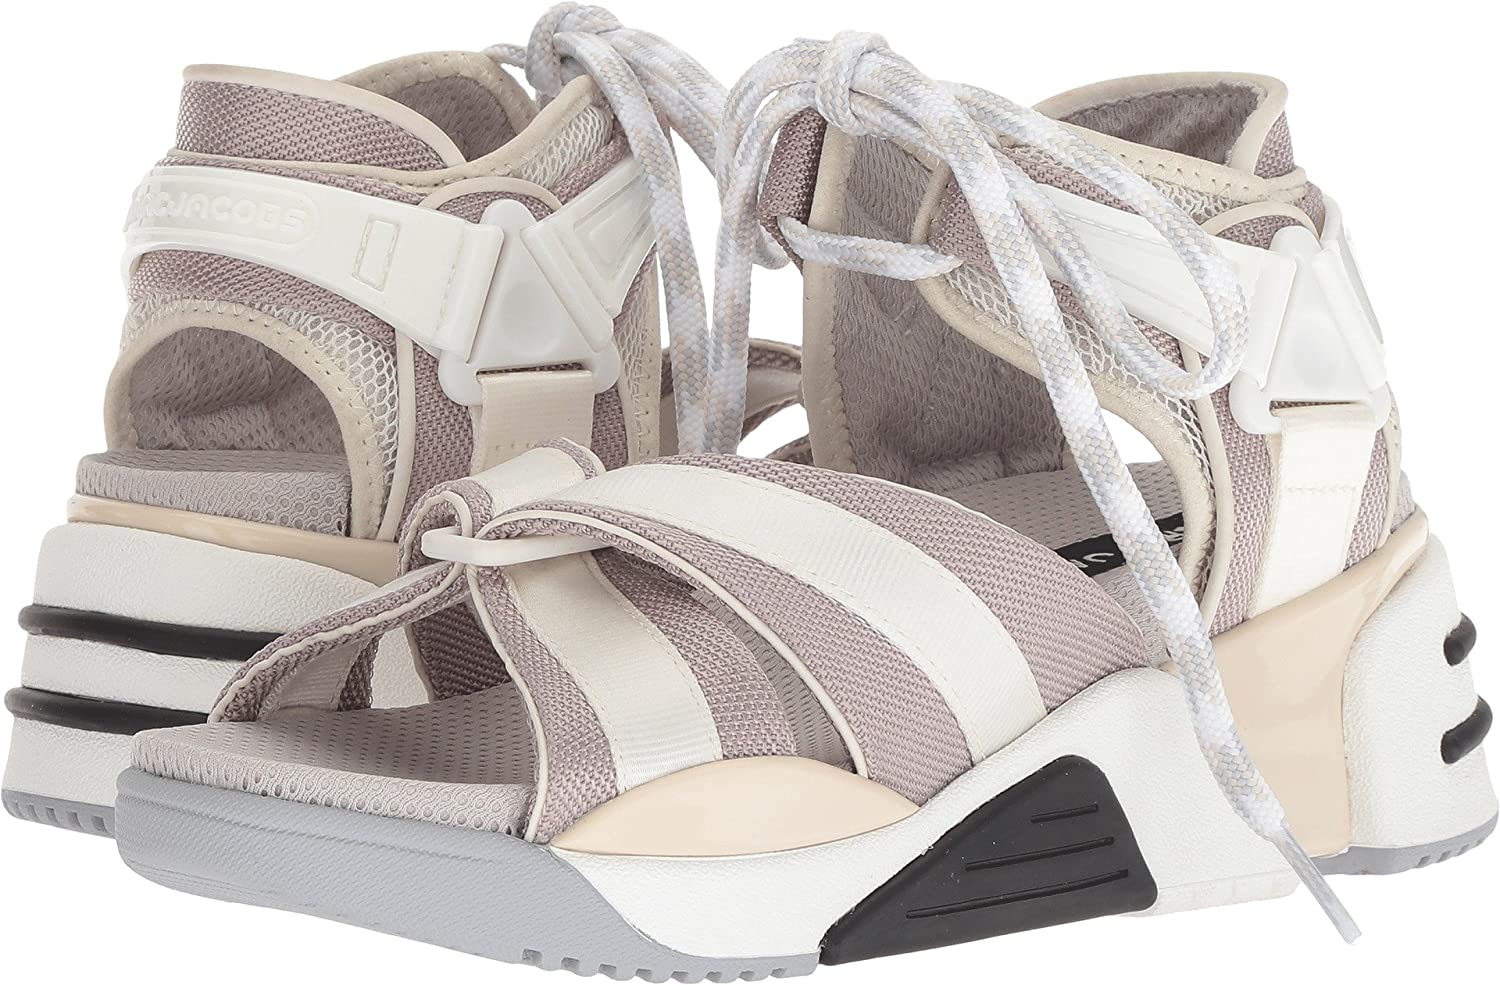 Marc Jacobs Women's Somewhere Sport Sandal B07C9KY83R 39 M EU|Cream Multi